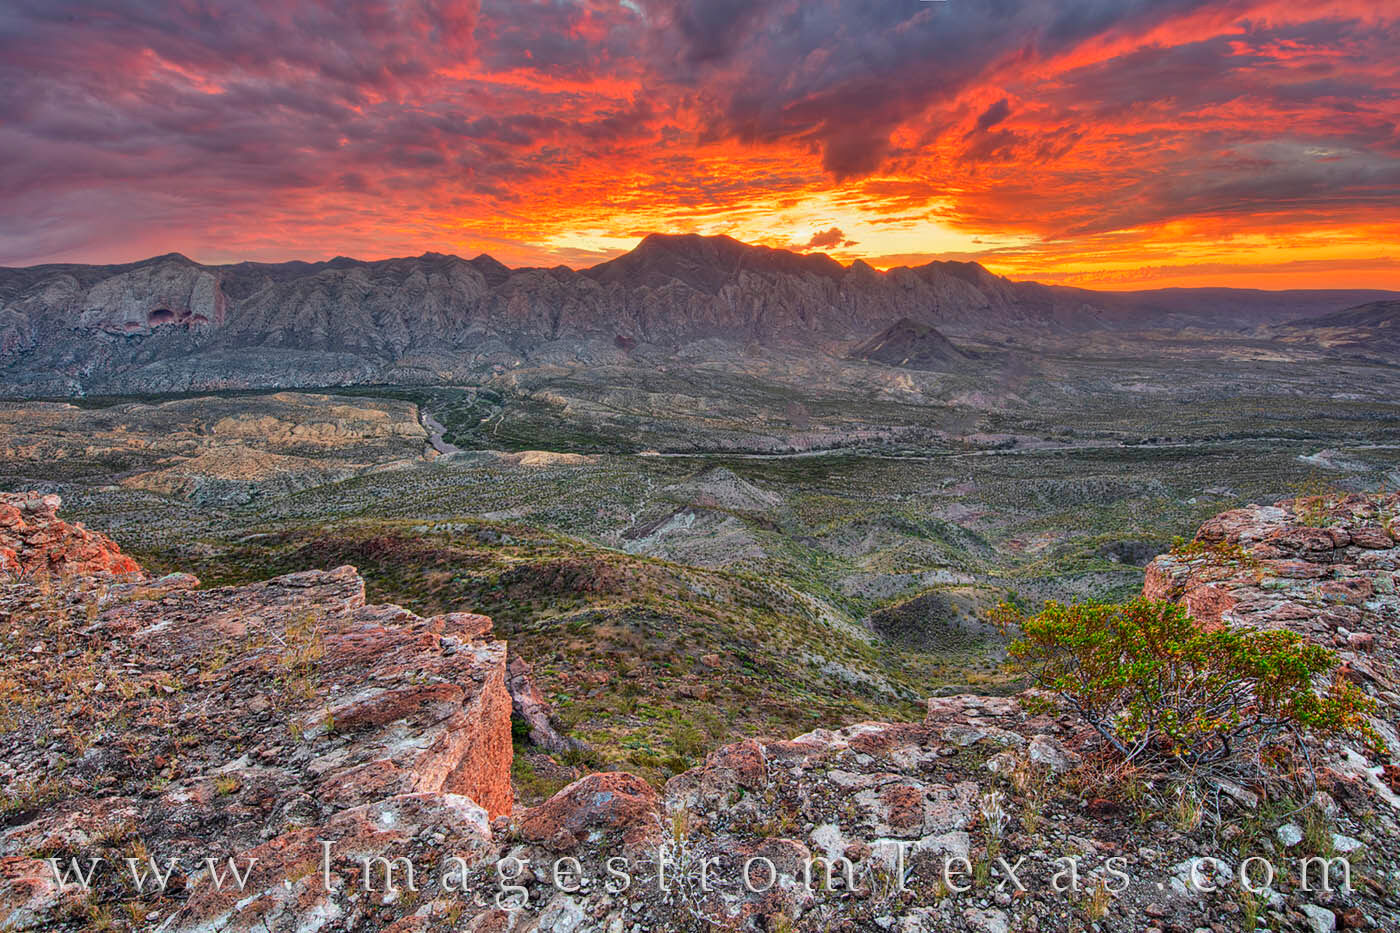 solitario, fresno canyon, big bend ranch state park, big bend, sunrise, west texas, laccolith, hiking, remote, rugged, canyon, chihuahuan desert, photo